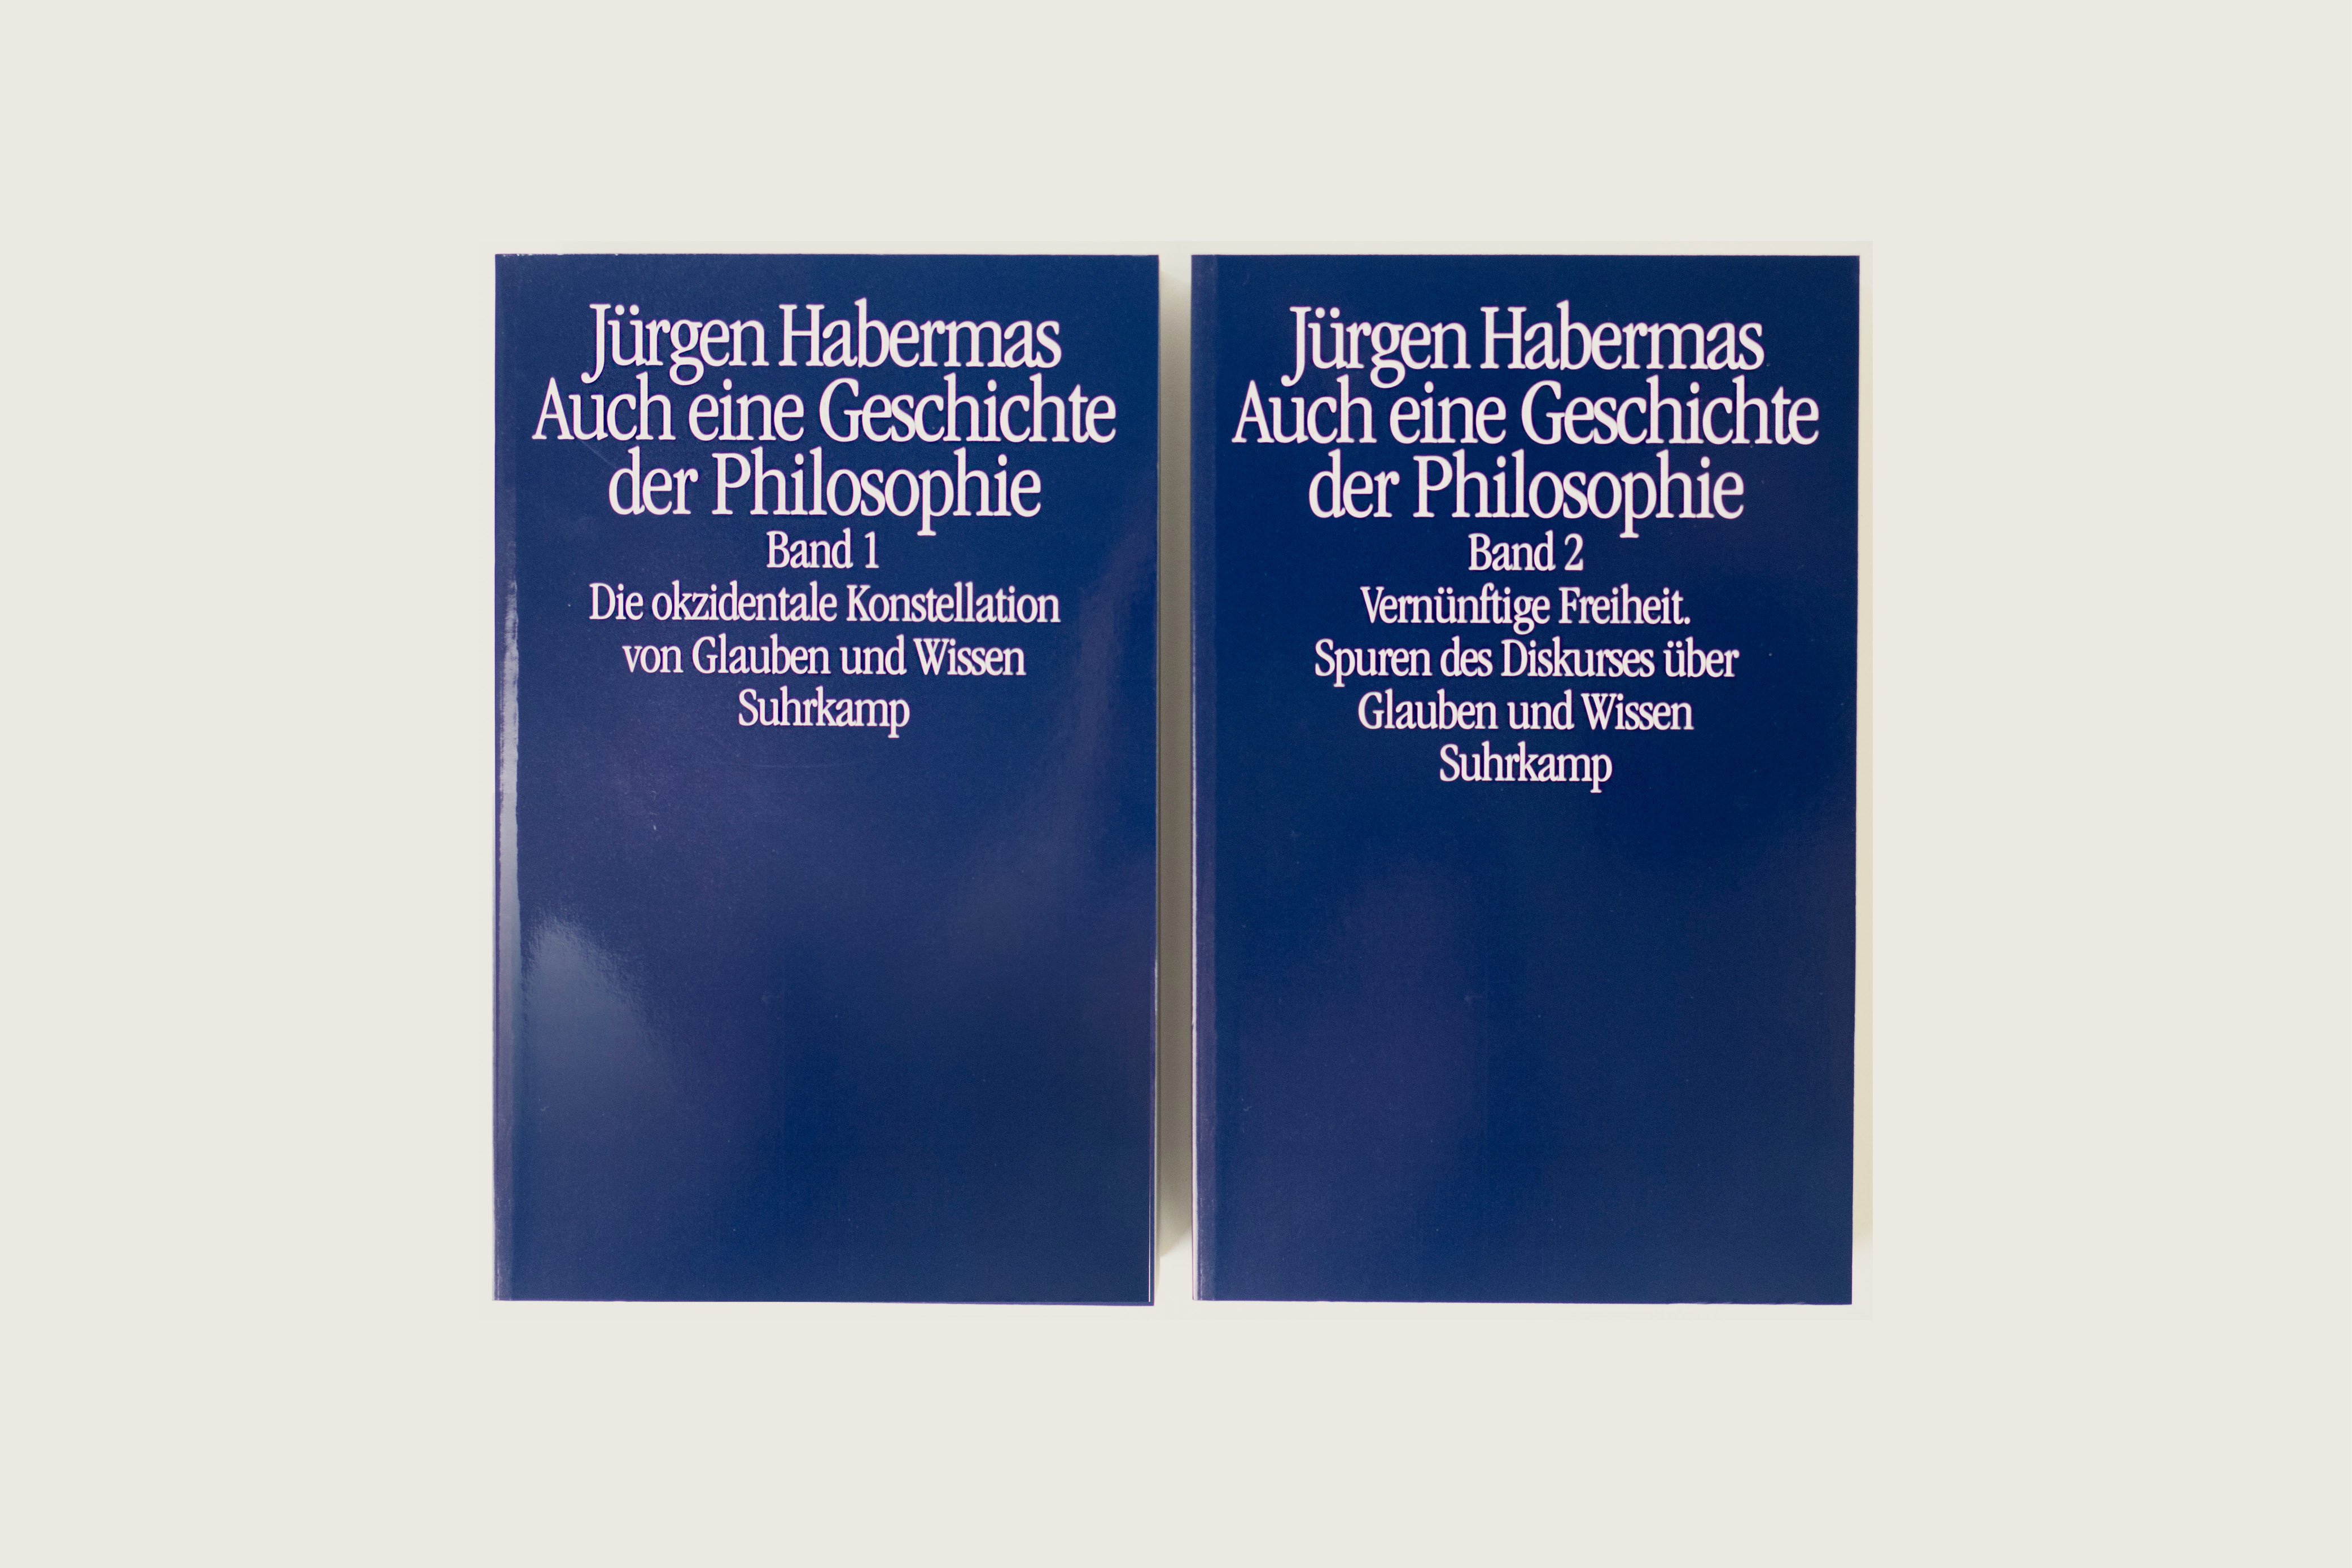 Also a History of Philosophy—Volume 1: The Occidental Constellation of Faith and Knowledge, Volume 2: Reasonable Freedom. Traces of the Discourse on Belief and Knowledge, Jürgen Habermas, Suhrkamp Insel, 98 euros, 1,752 pp., November 2019